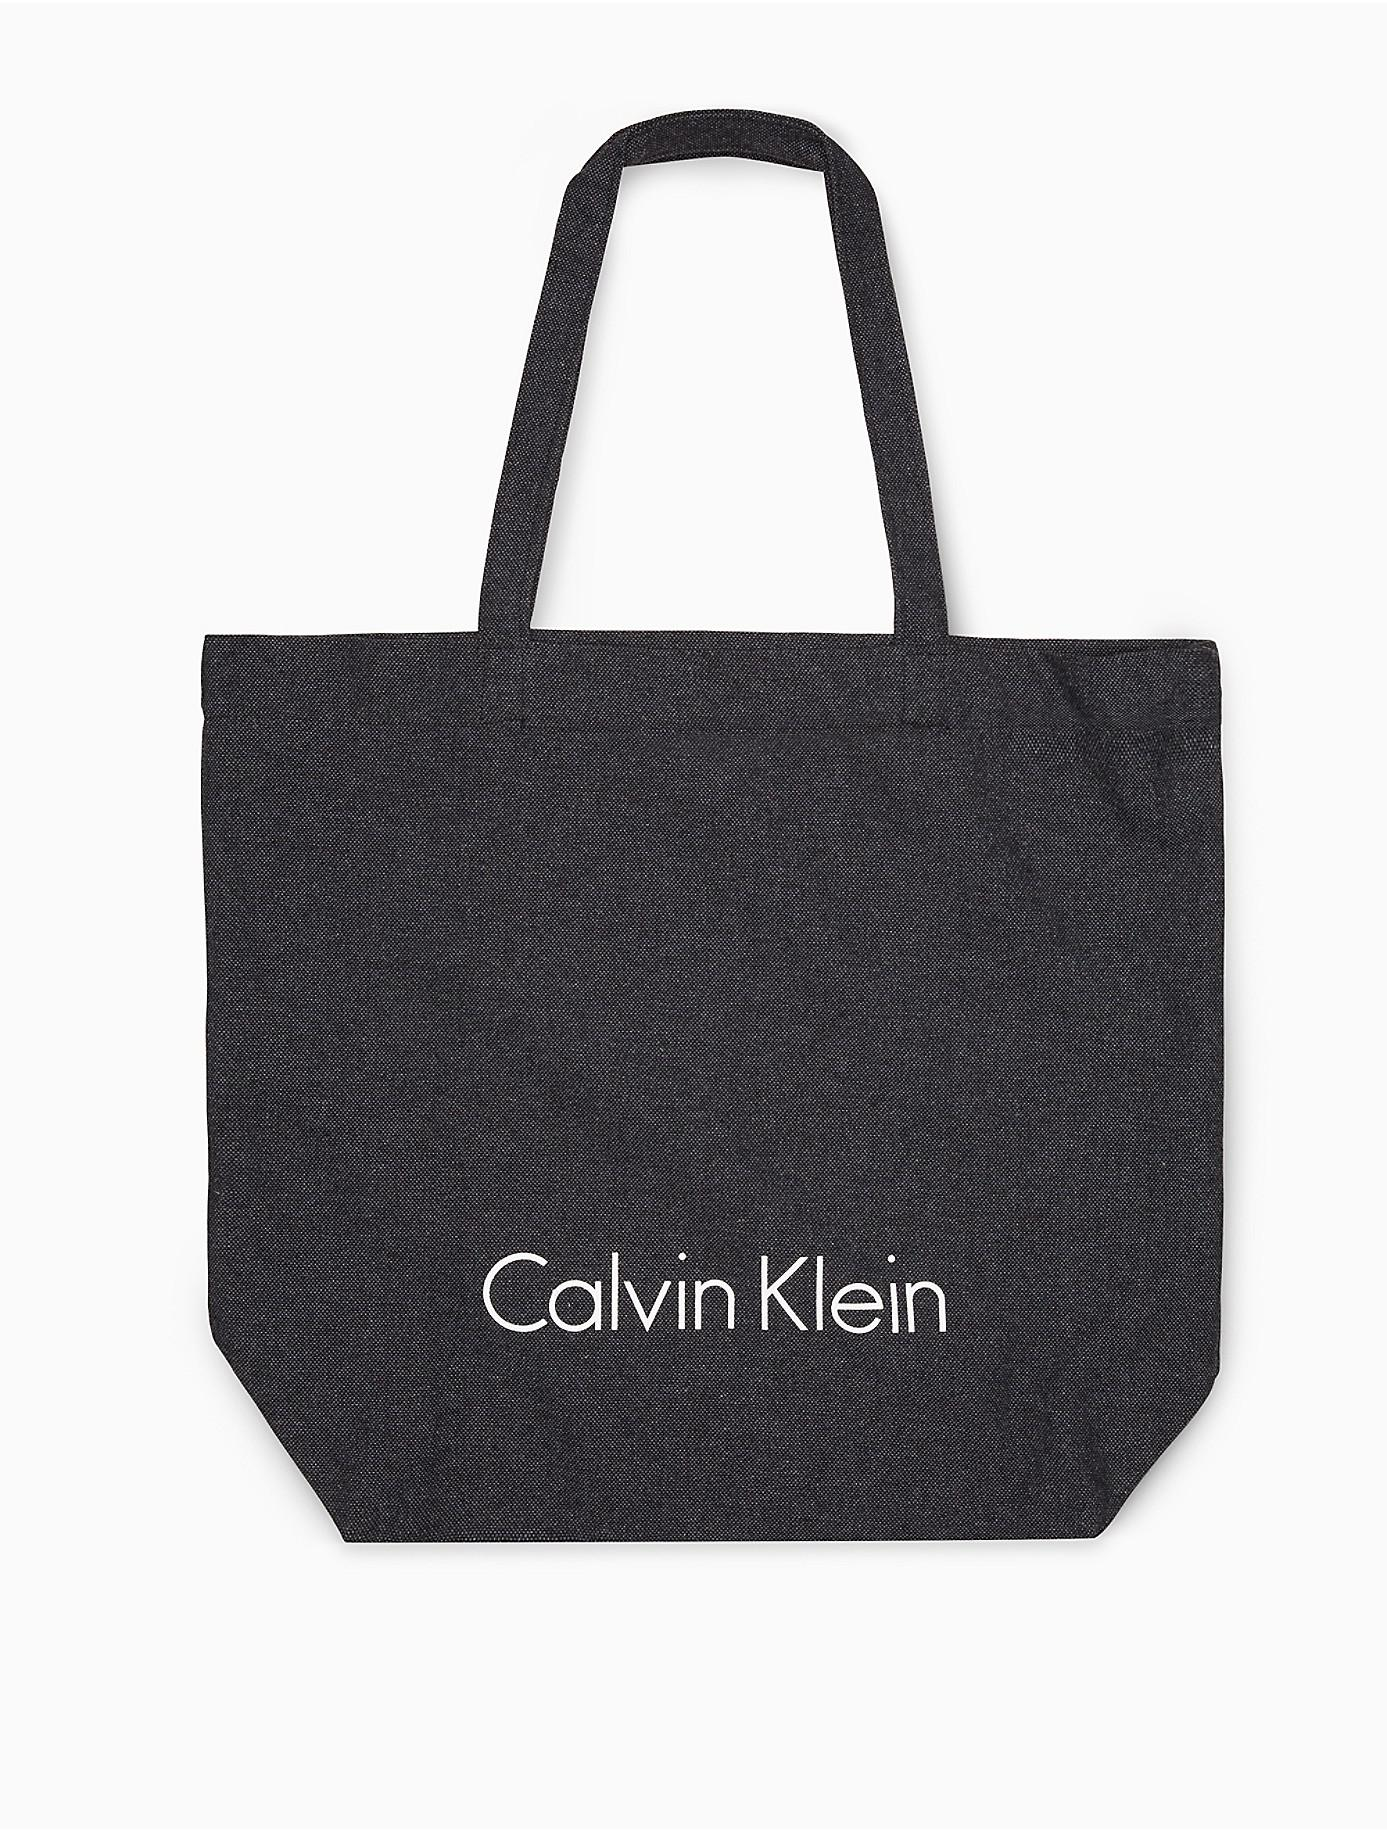 Excellent For Sale Outlet Newest Womens Small Tote Bag CALVIN KLEIN 205W39NYC Best Wholesale Cheap Online Free Shipping Enjoy kev1P7